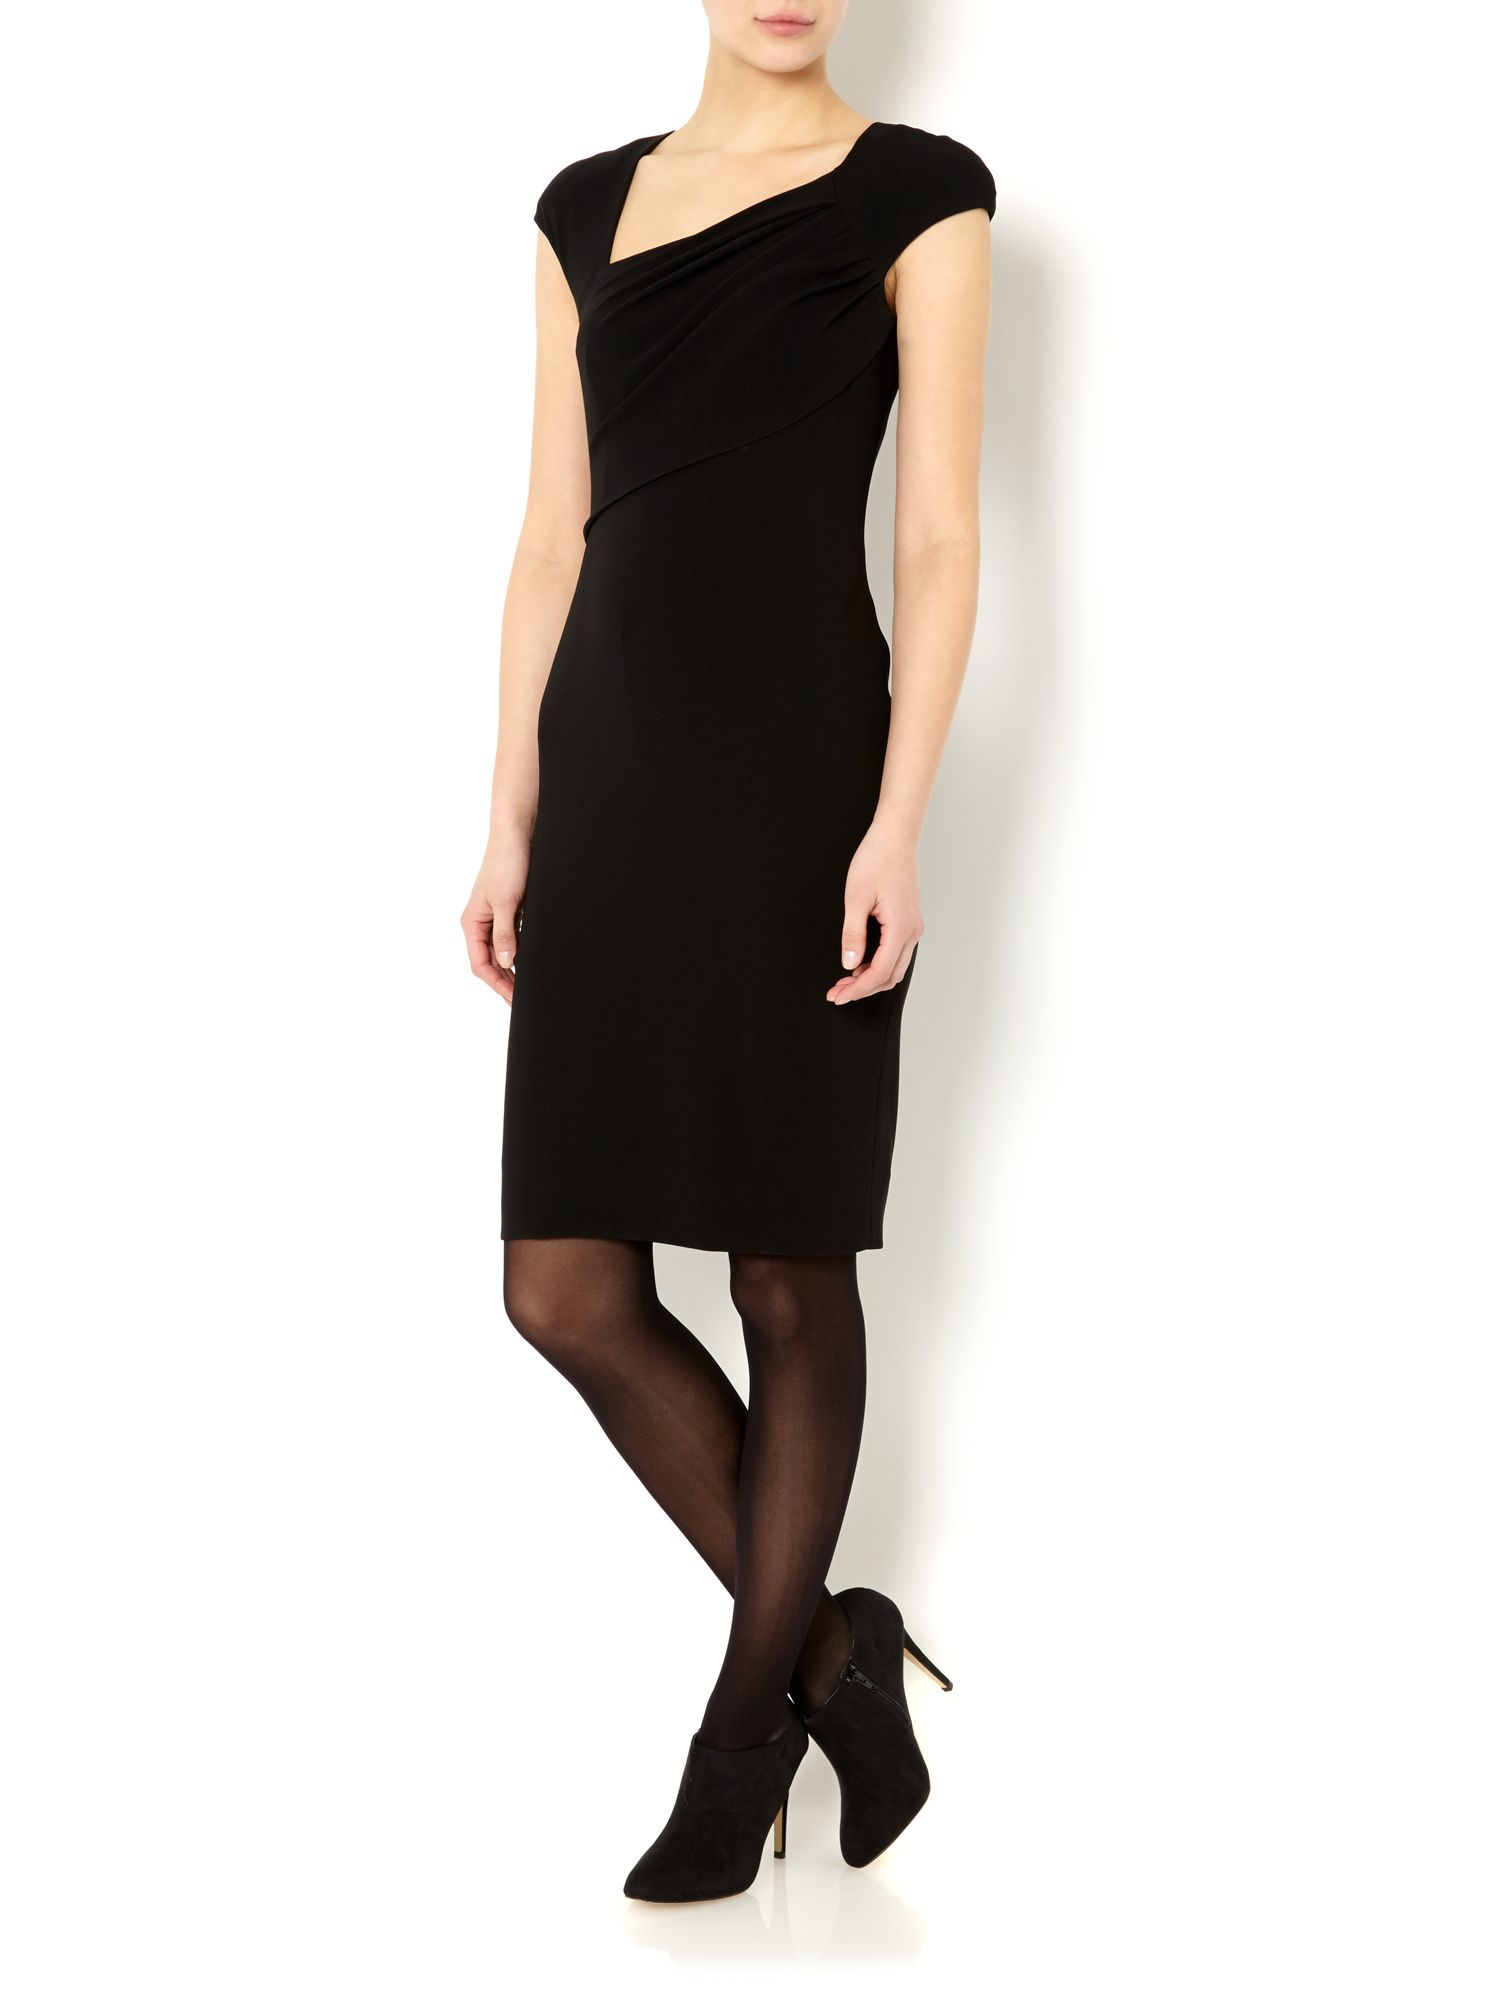 Erba cap sleeve dress